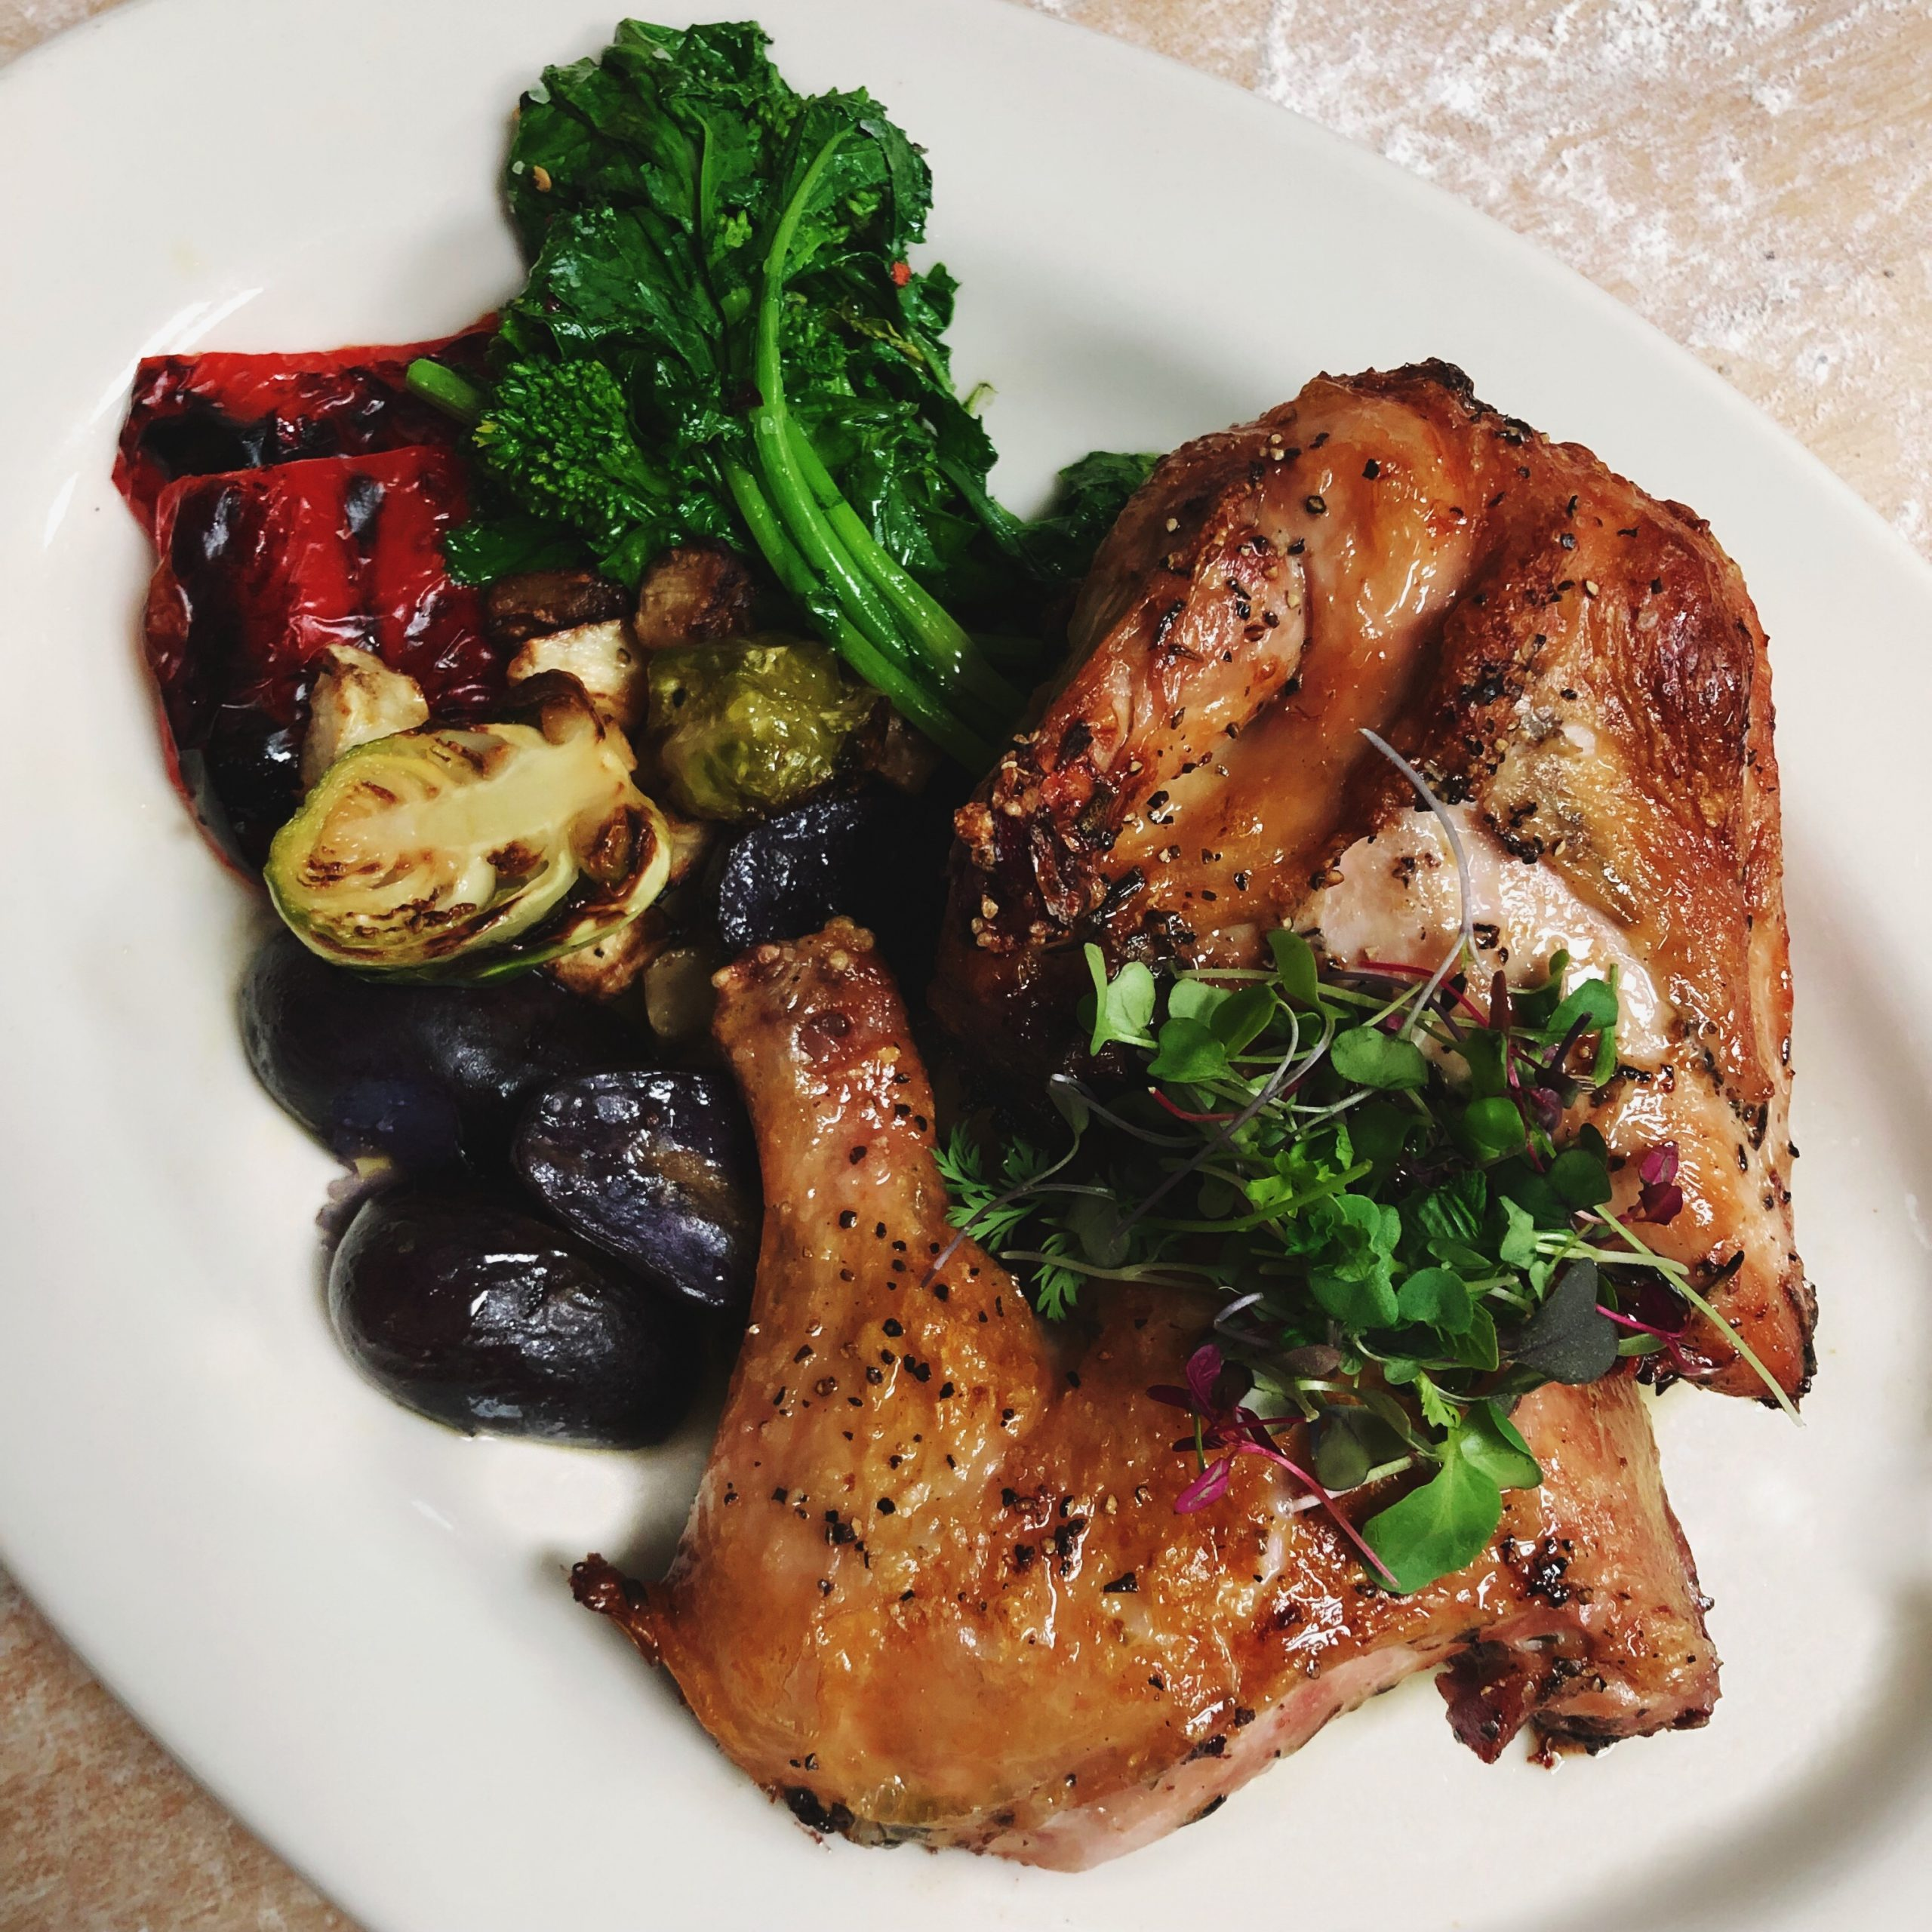 Free Range Chicken with grilled vegetables